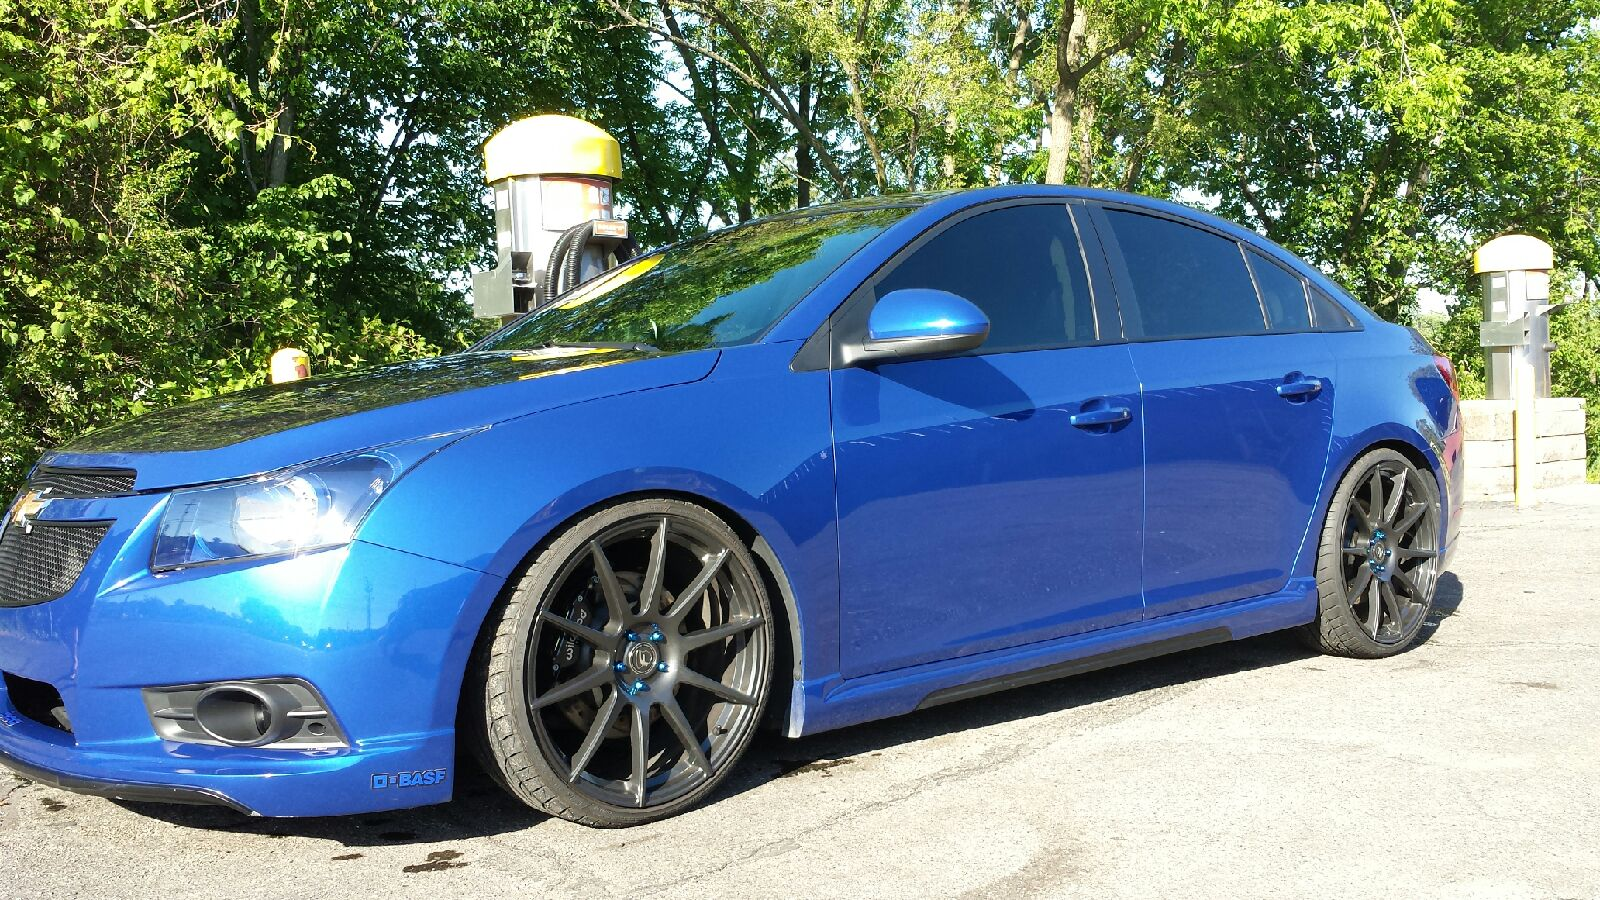 Chevy Cruze Rims Pictures to pin on Pinterest